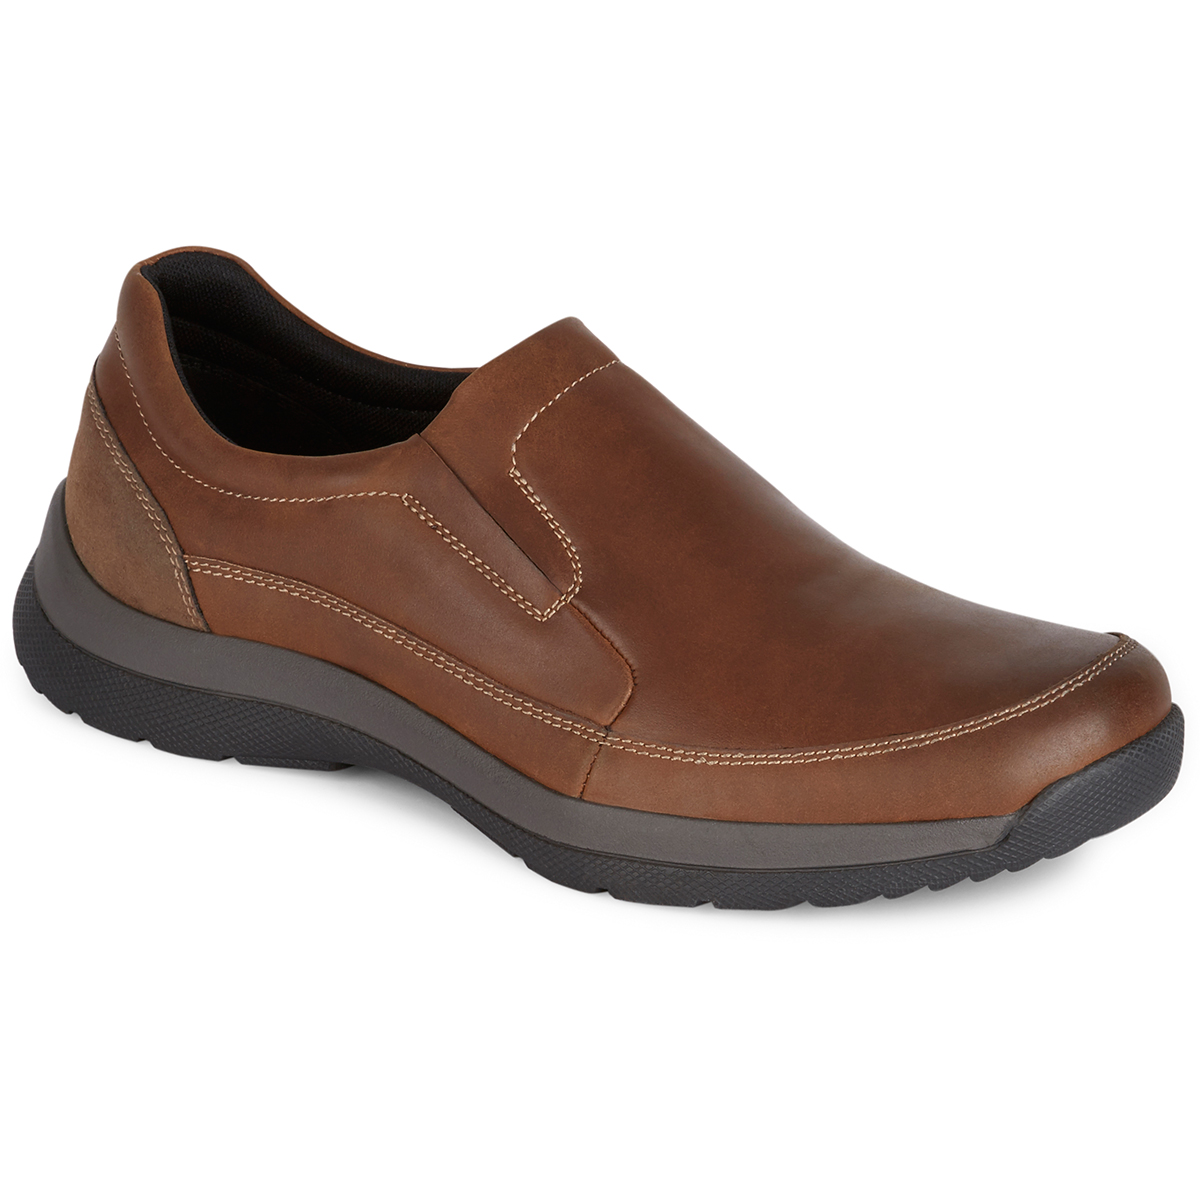 Dockers Men's Rogan Moc Toe Casual Slip-On Shoes - Brown, 10